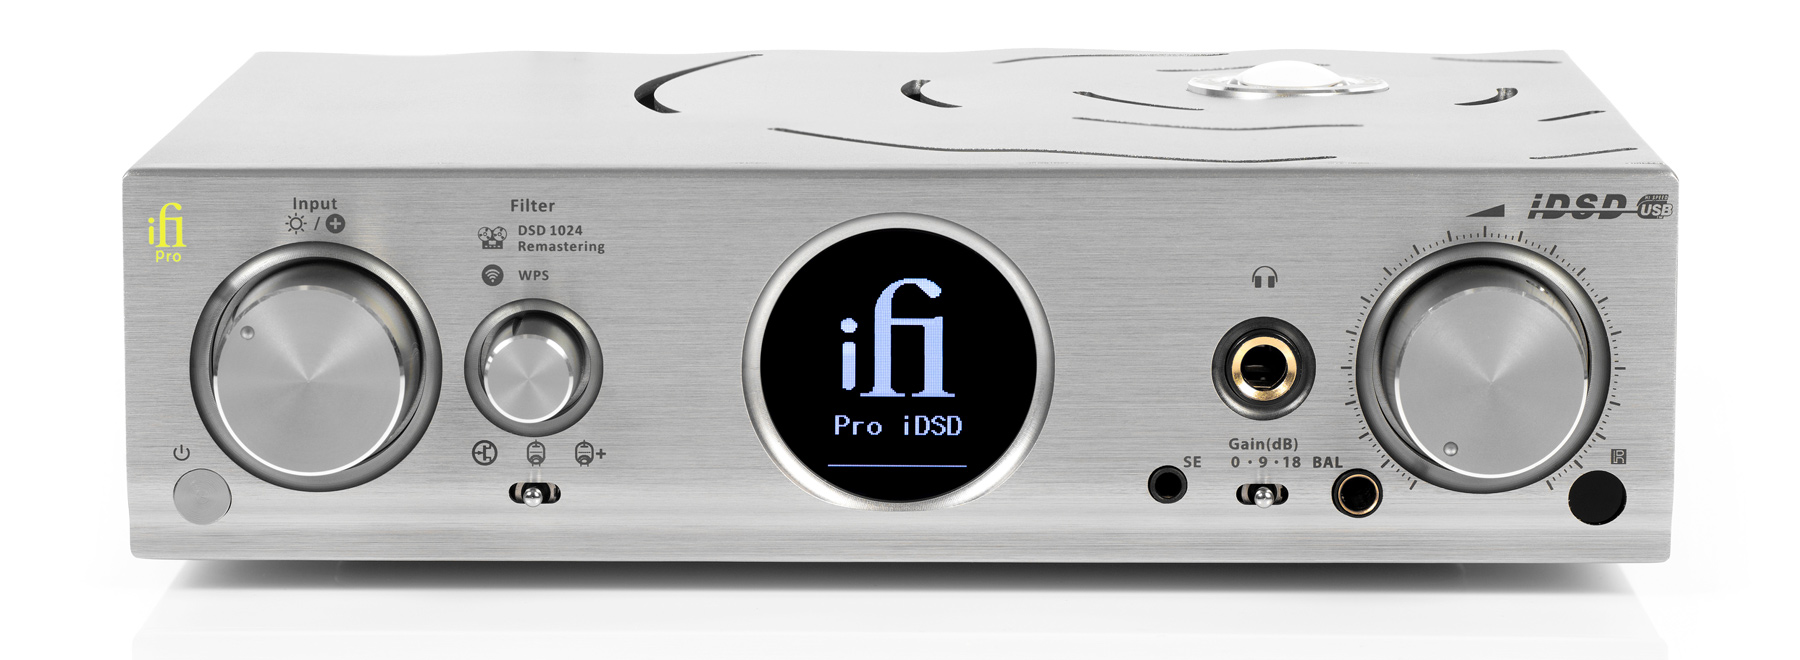 Pro iDSD by iFi audio | Solid State or Tube DAC, WiFi Streaming